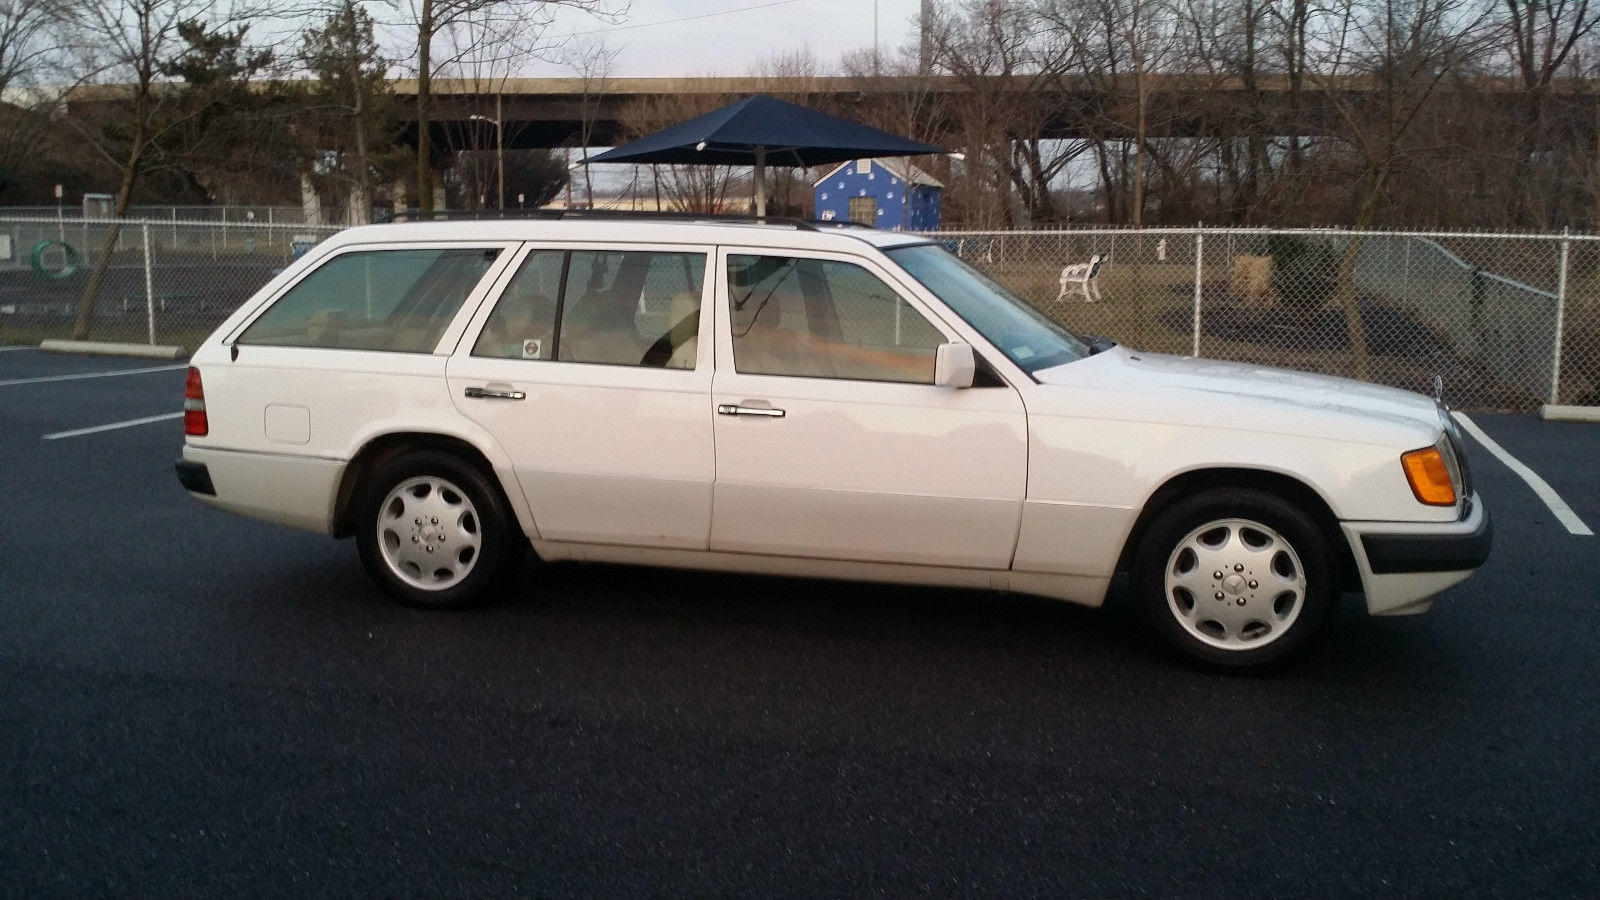 1992 mercedes benz 300te wagon with low miles and so clean for 1988 mercedes benz 300te